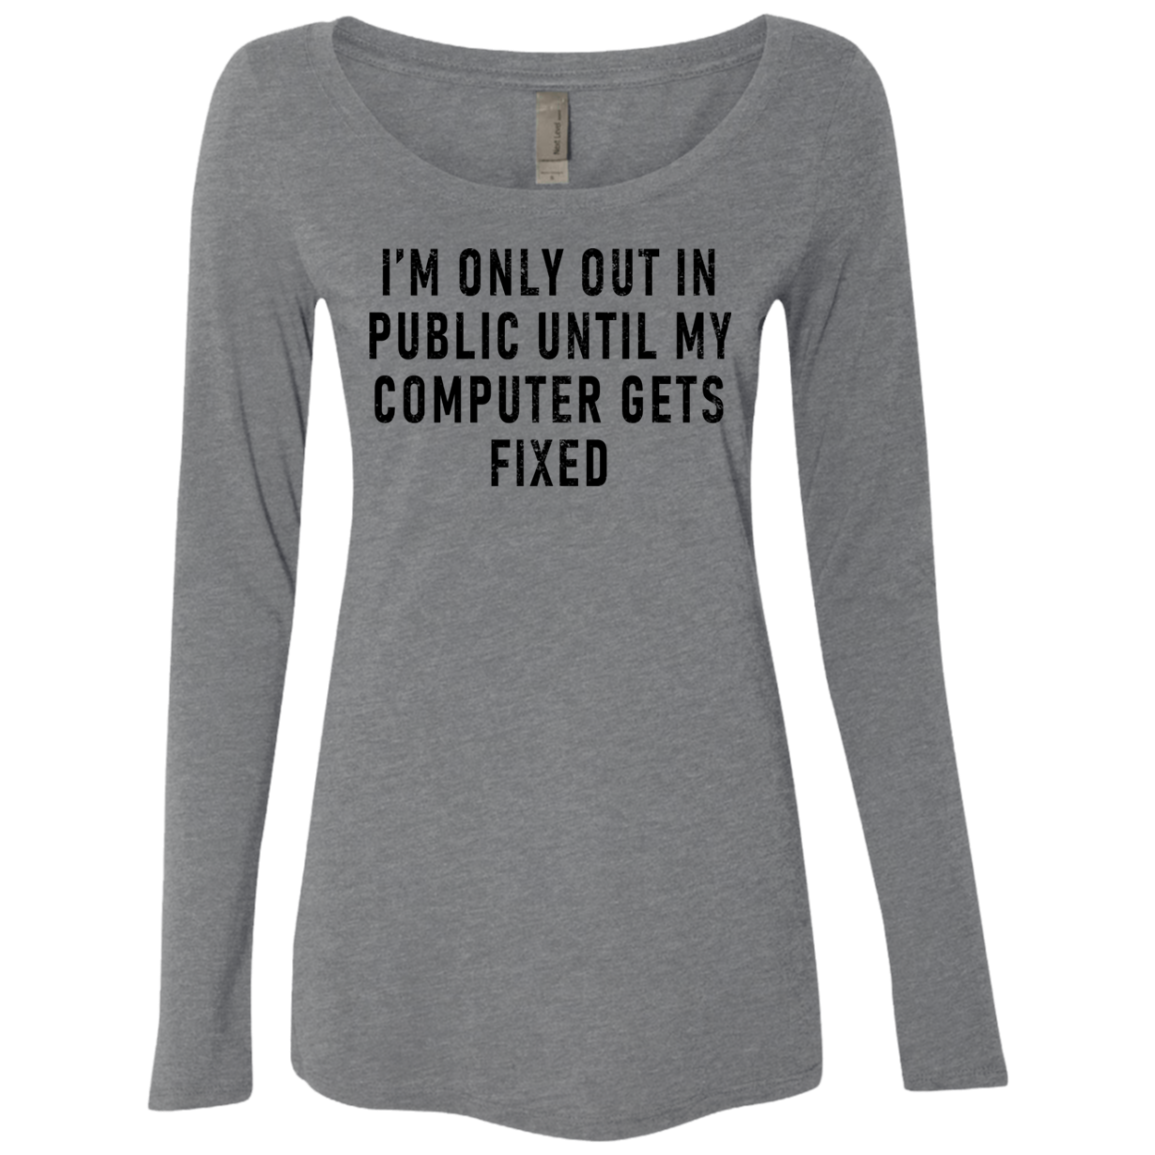 I'm Only Out In Public Until My Computer Gets Fixed Women's Long Sleeve Tee